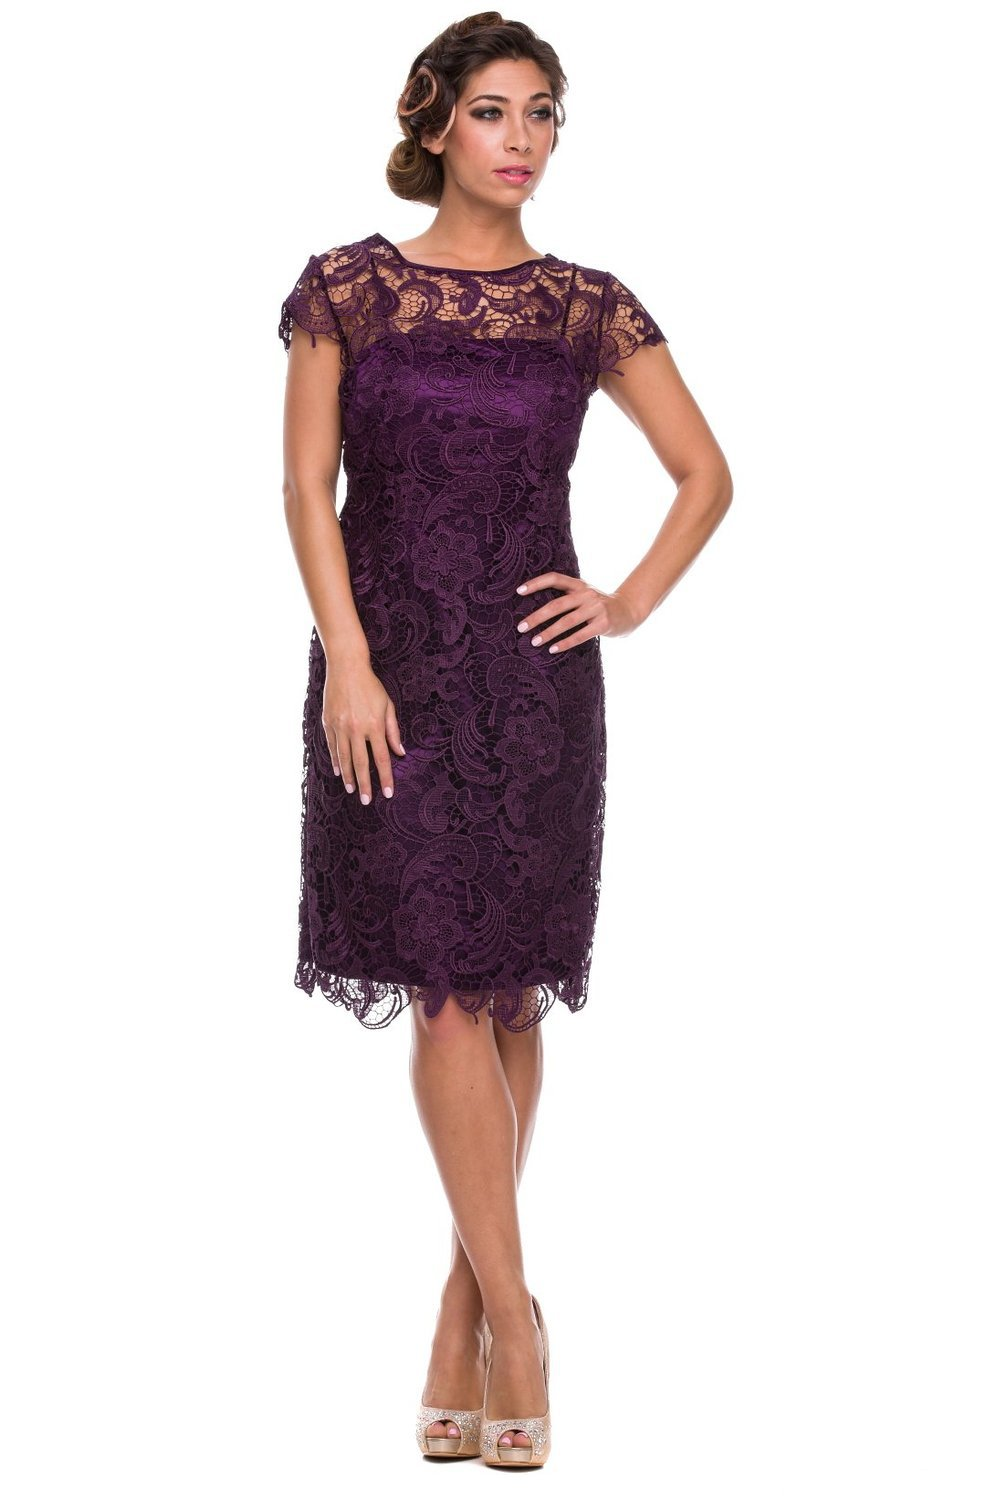 2015 New Fashion Summer Dress Short Purple Lace Mother Of